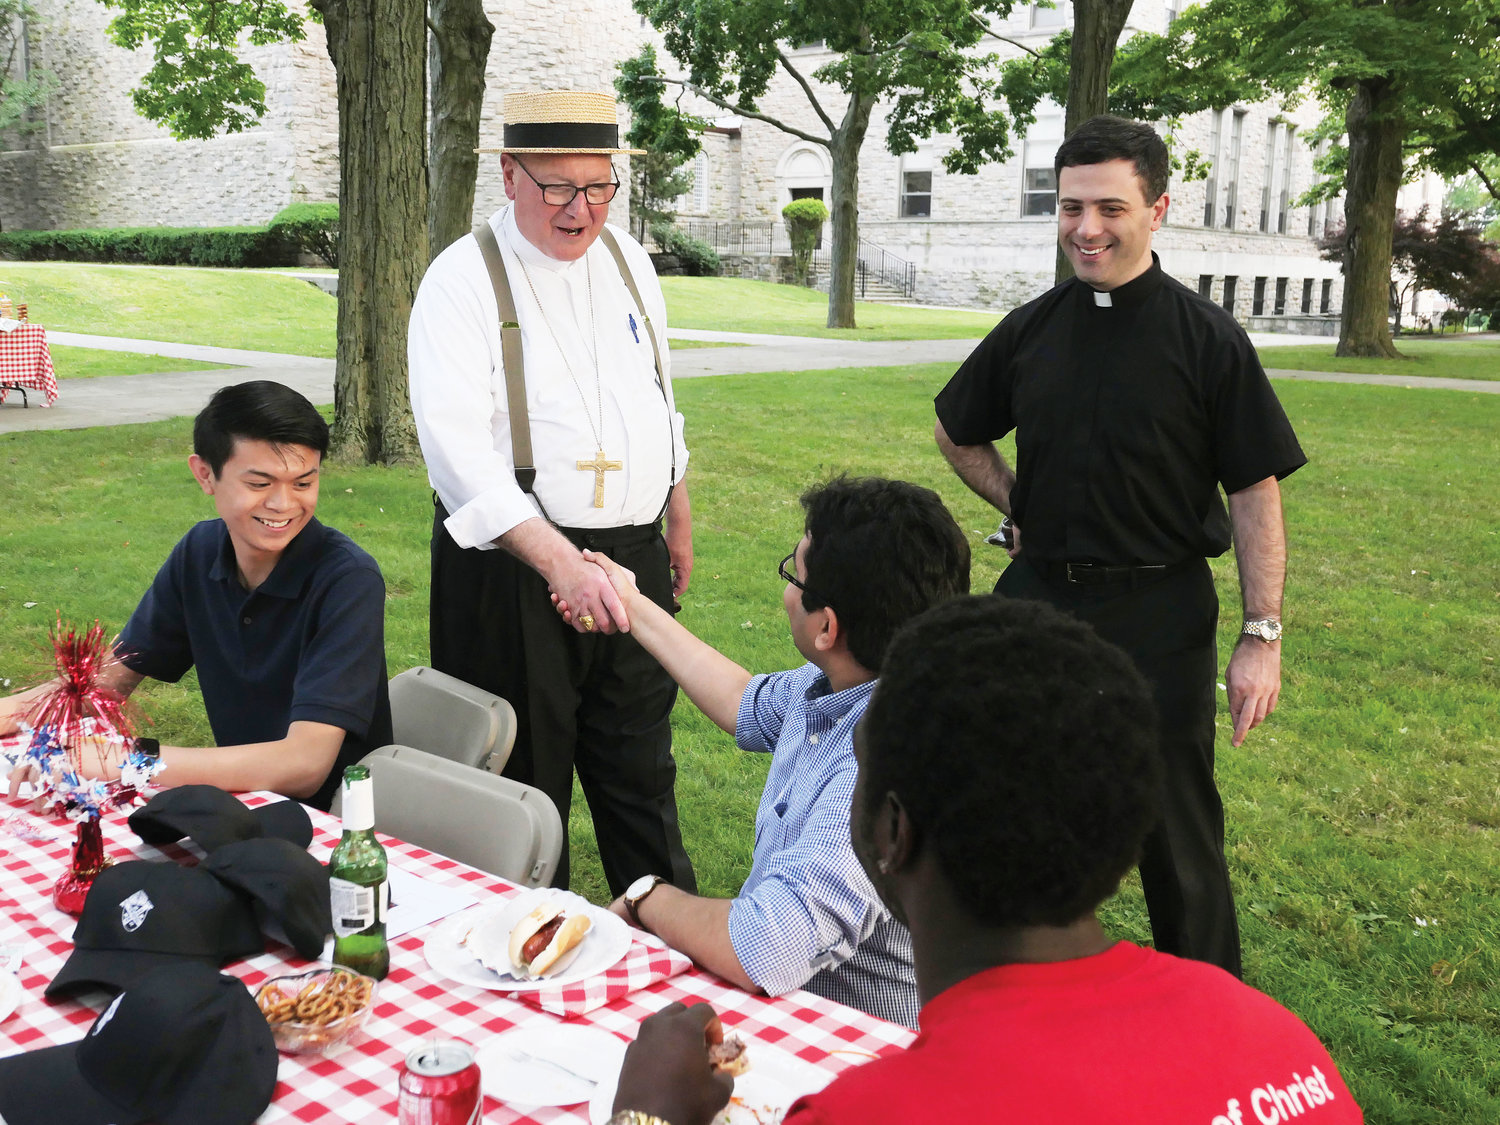 Cardinal Dolan and Father Christopher Argano, director of vocations for the archdiocese, meet New York seminarians, Cathedral Prep students and discerners at the fifth annual Summer Seminarian Gathering June 28 at St. Joseph's Seminary, Dunwoodie.